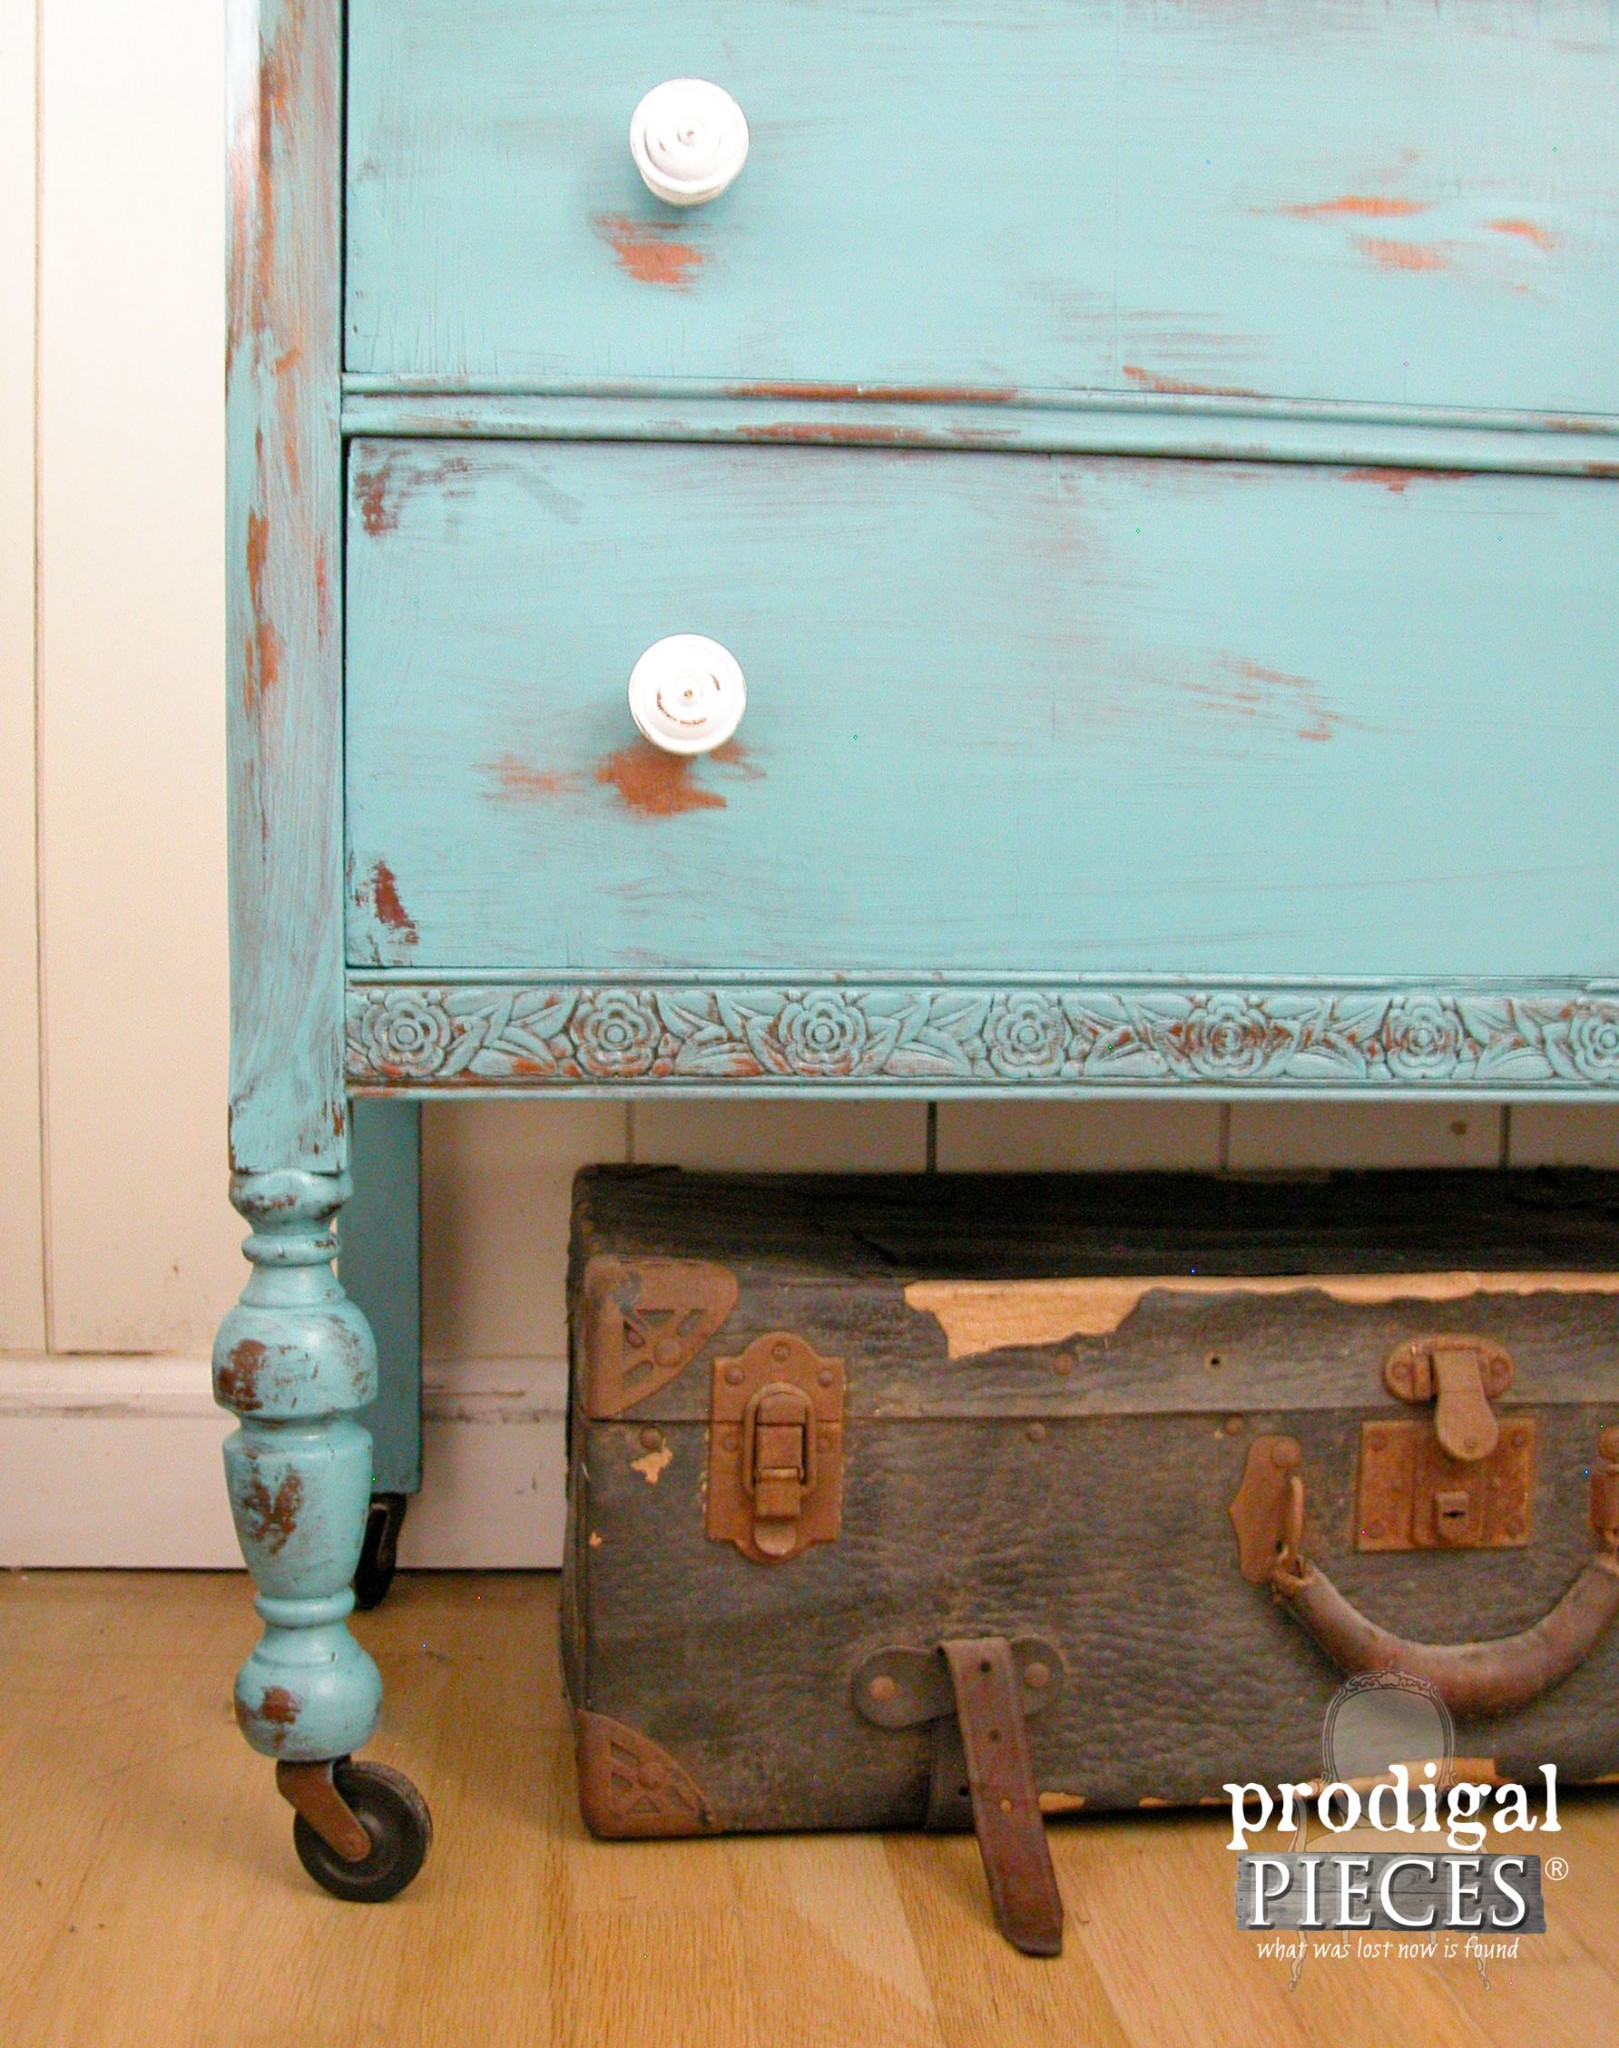 Leg of Teal Vintage Chest of Drawers with Distressing by Prodigal Pieces | www.prodigalpieces.com